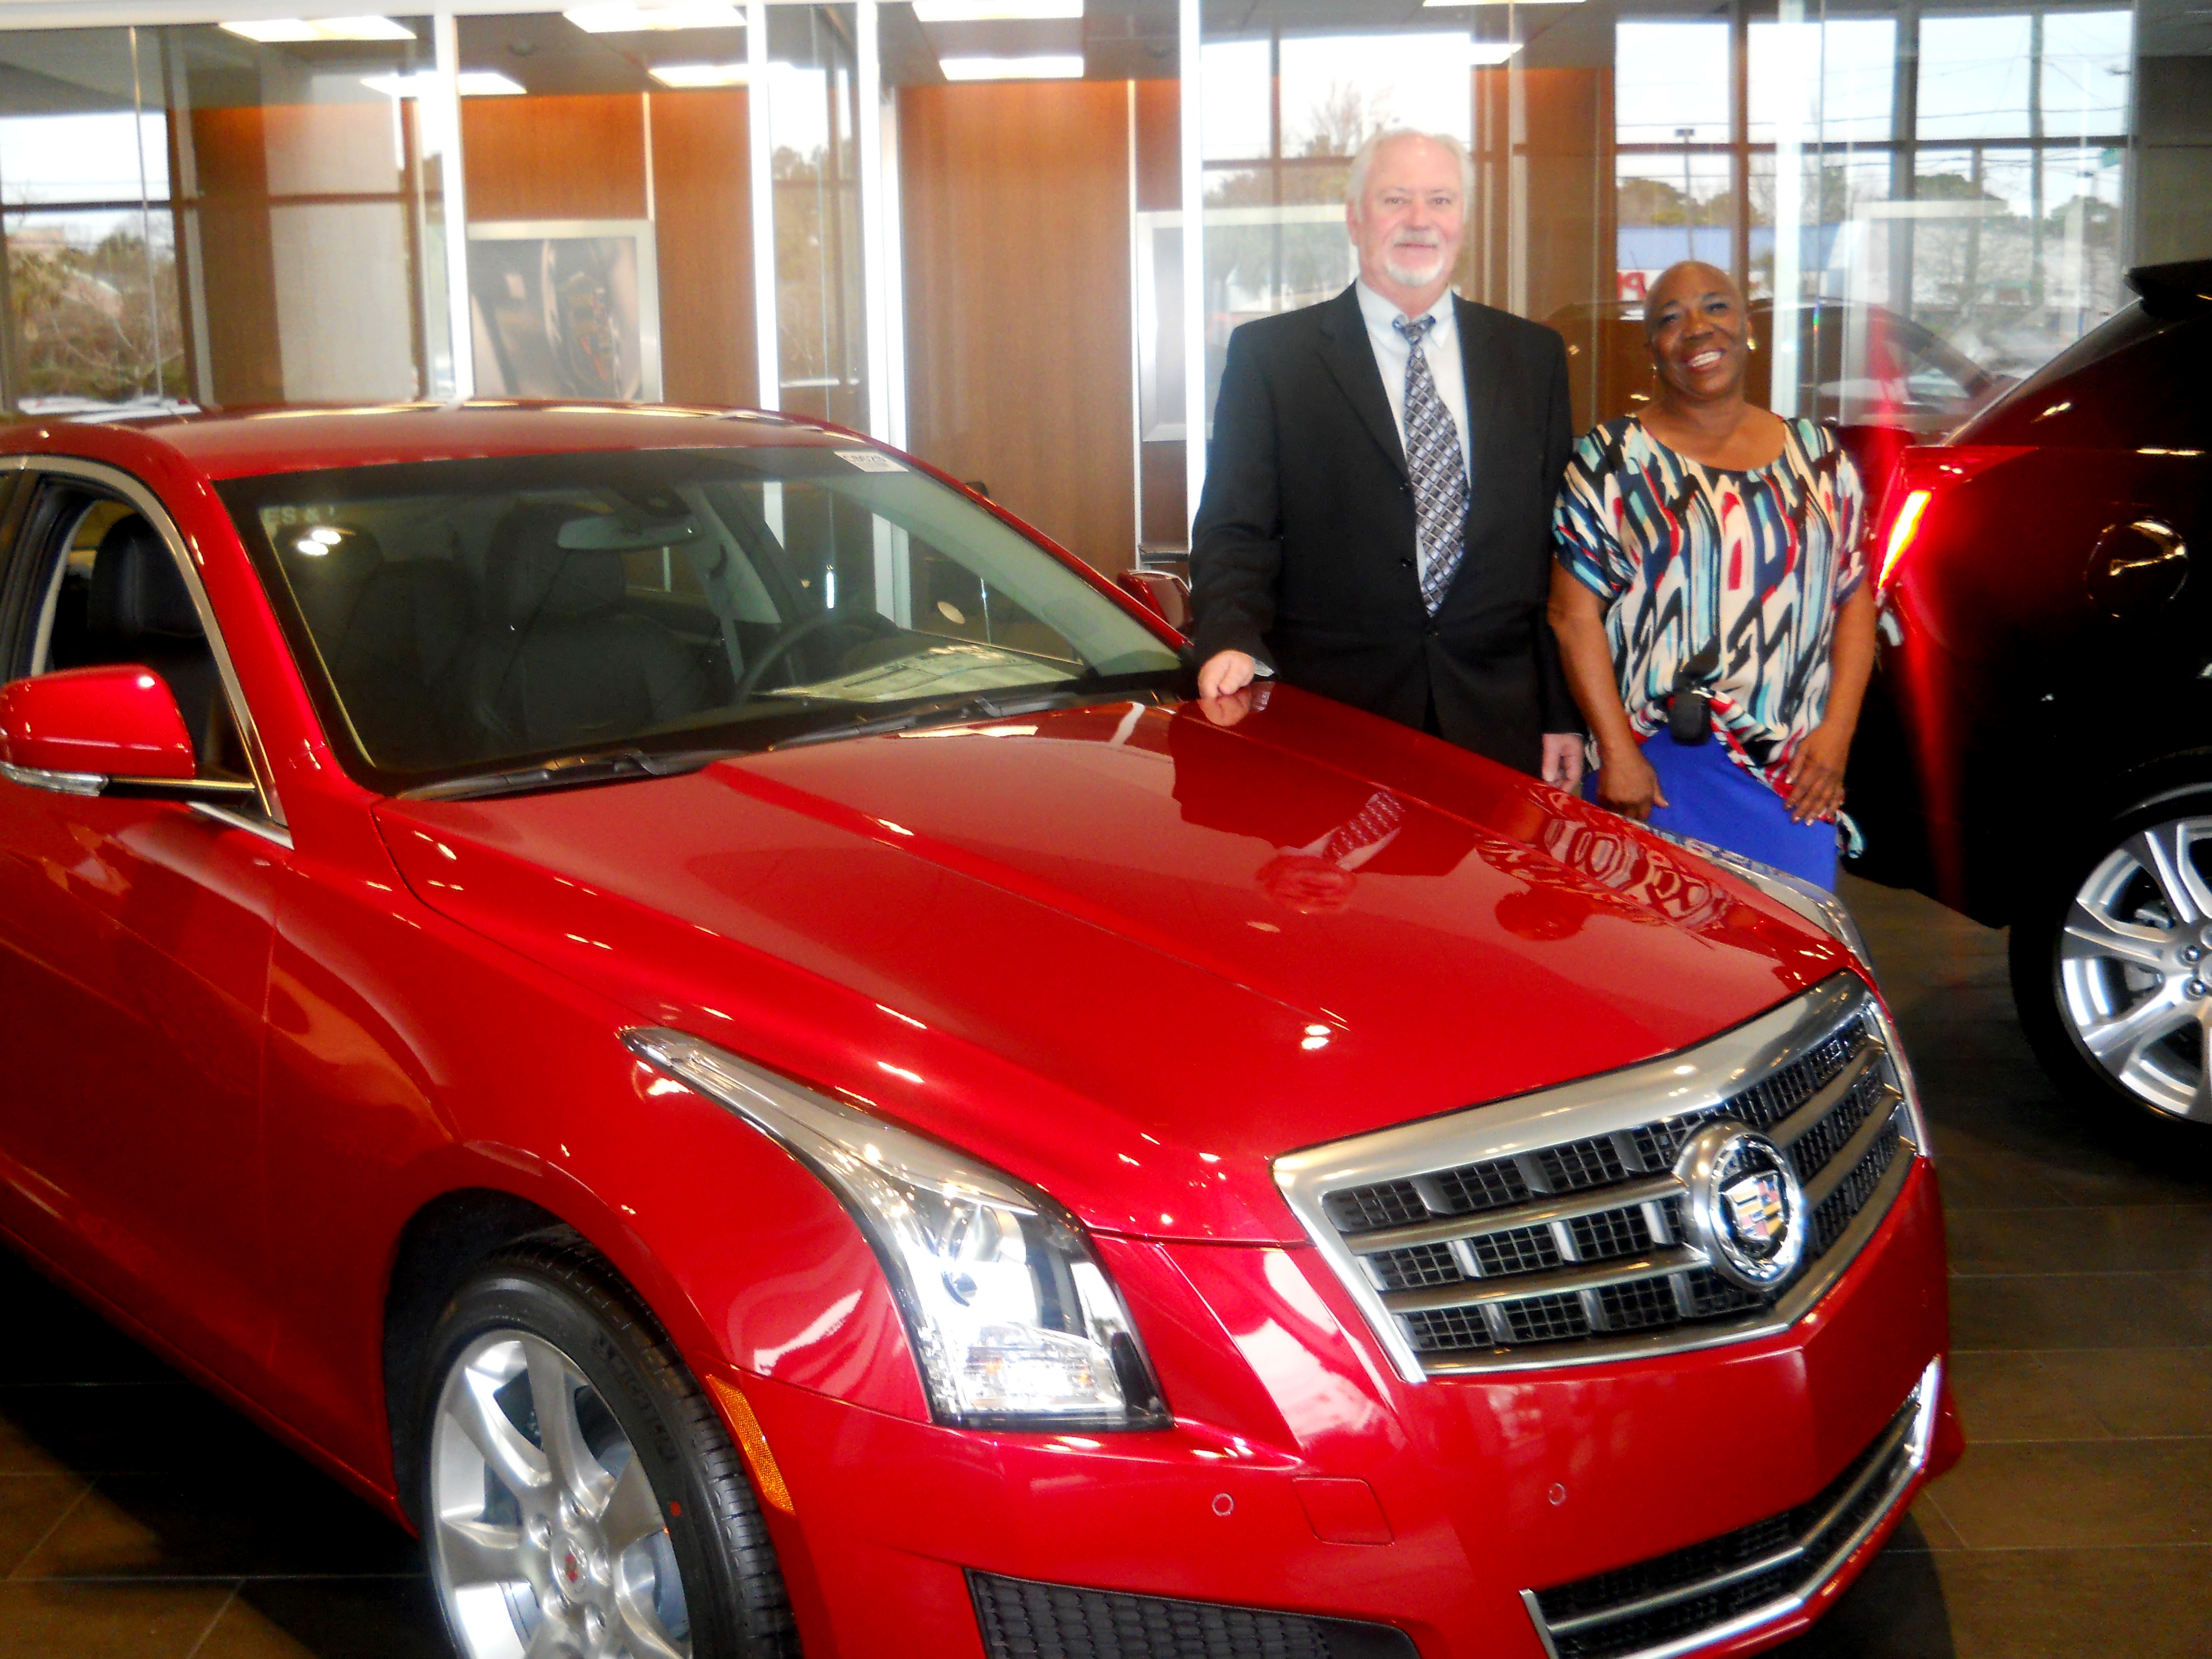 Baker buick gmc cadillac welcomes new sales associates for Cadillac motor car company